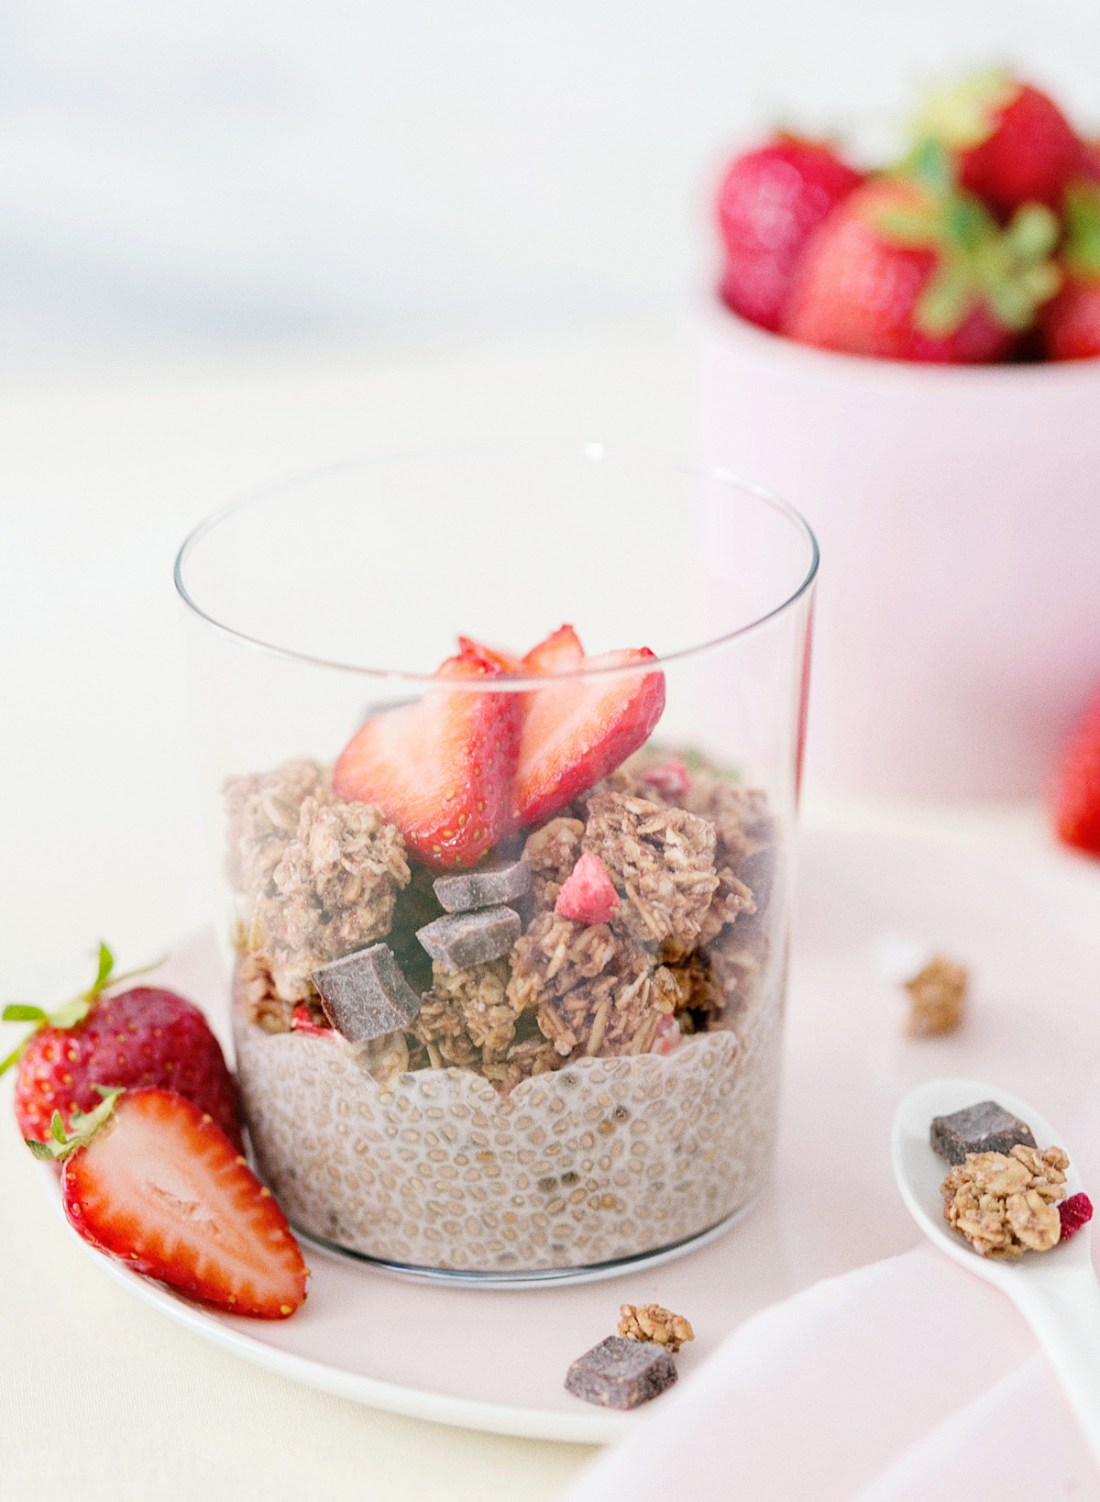 Simple Almond Chia Seed Parfait Recipe